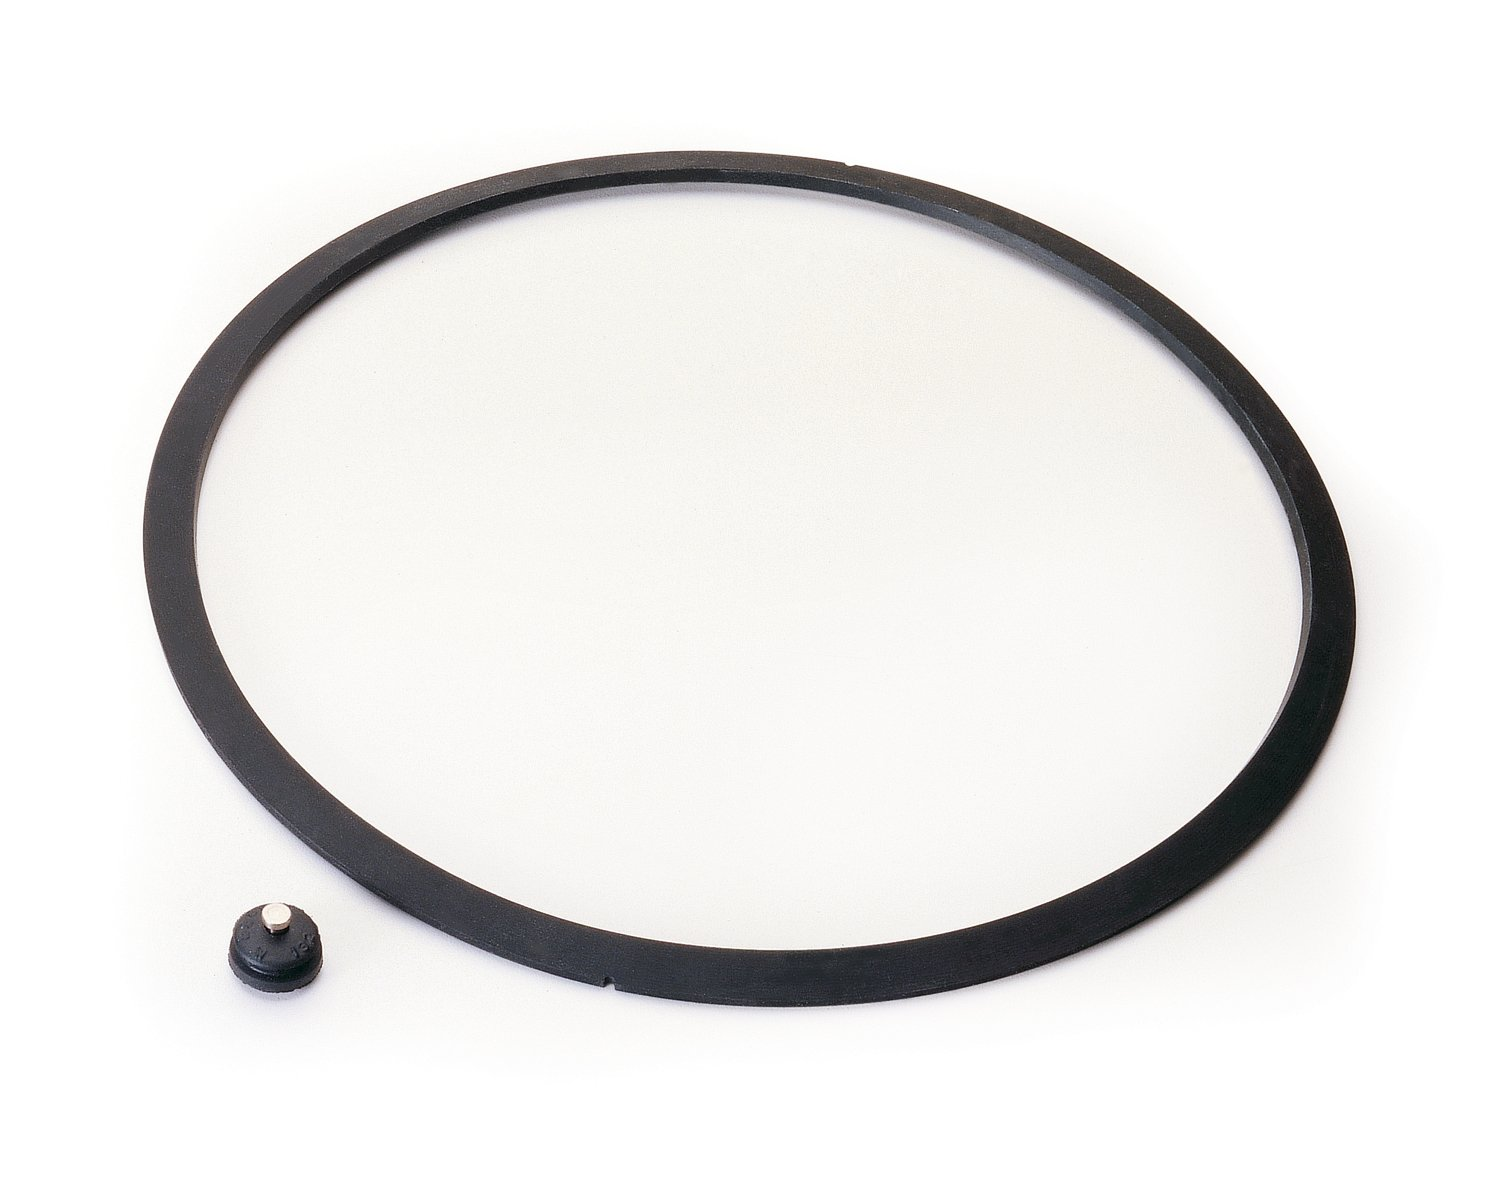 Presto Pressure Cooker Sealing Ring/Automatic Air Vent Pack (3 & 4 Quart) by Presto (Image #2)